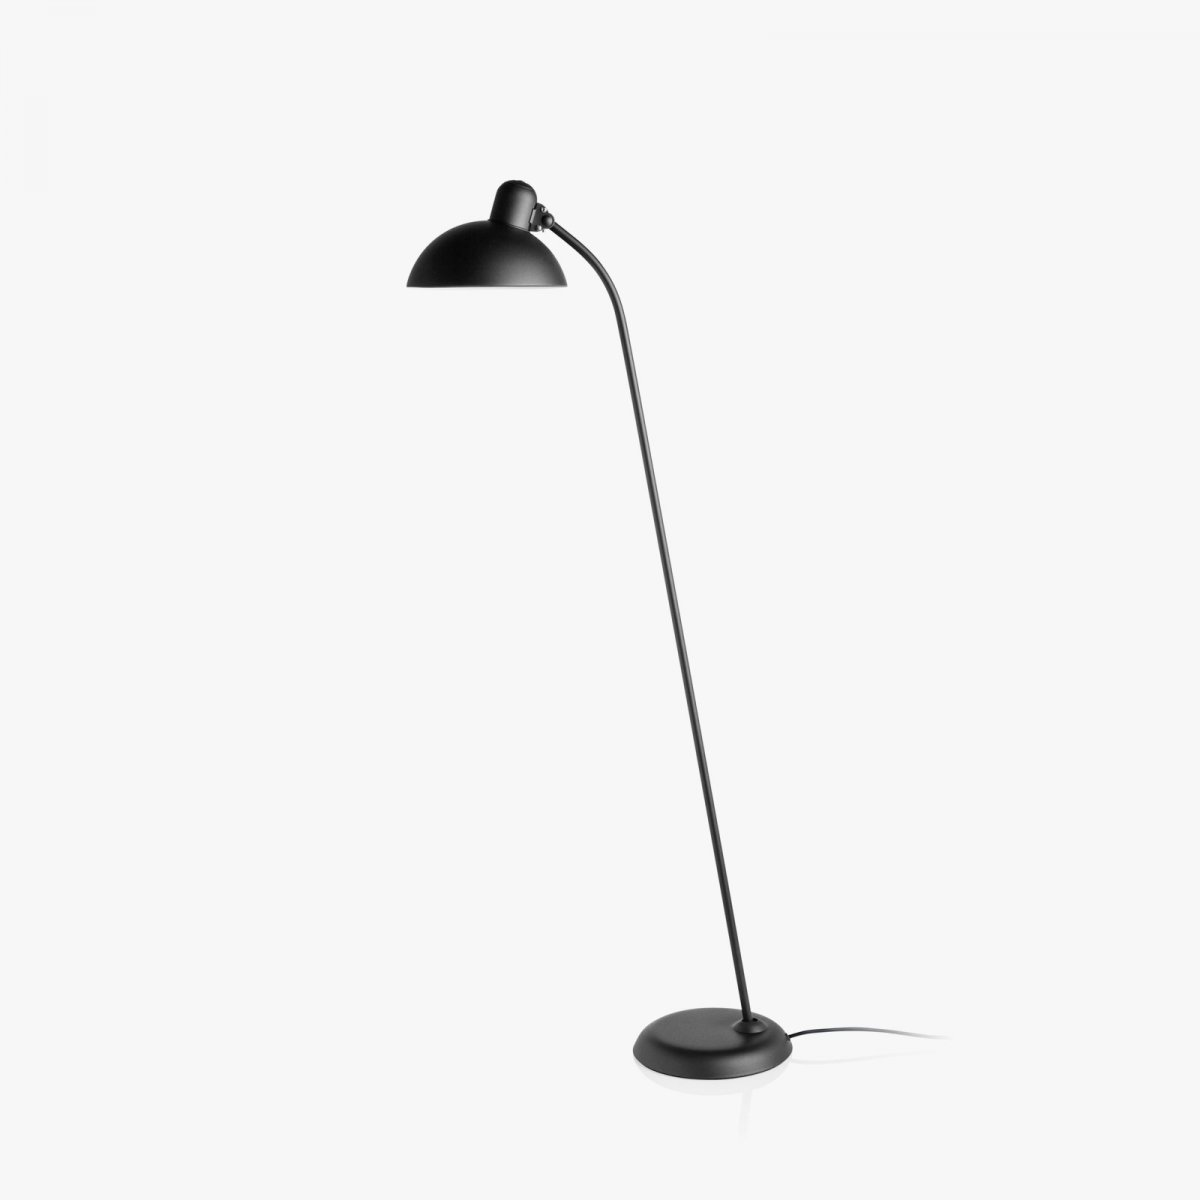 Kaiser Idell 6556-F tiltable floor lamp, matt black.